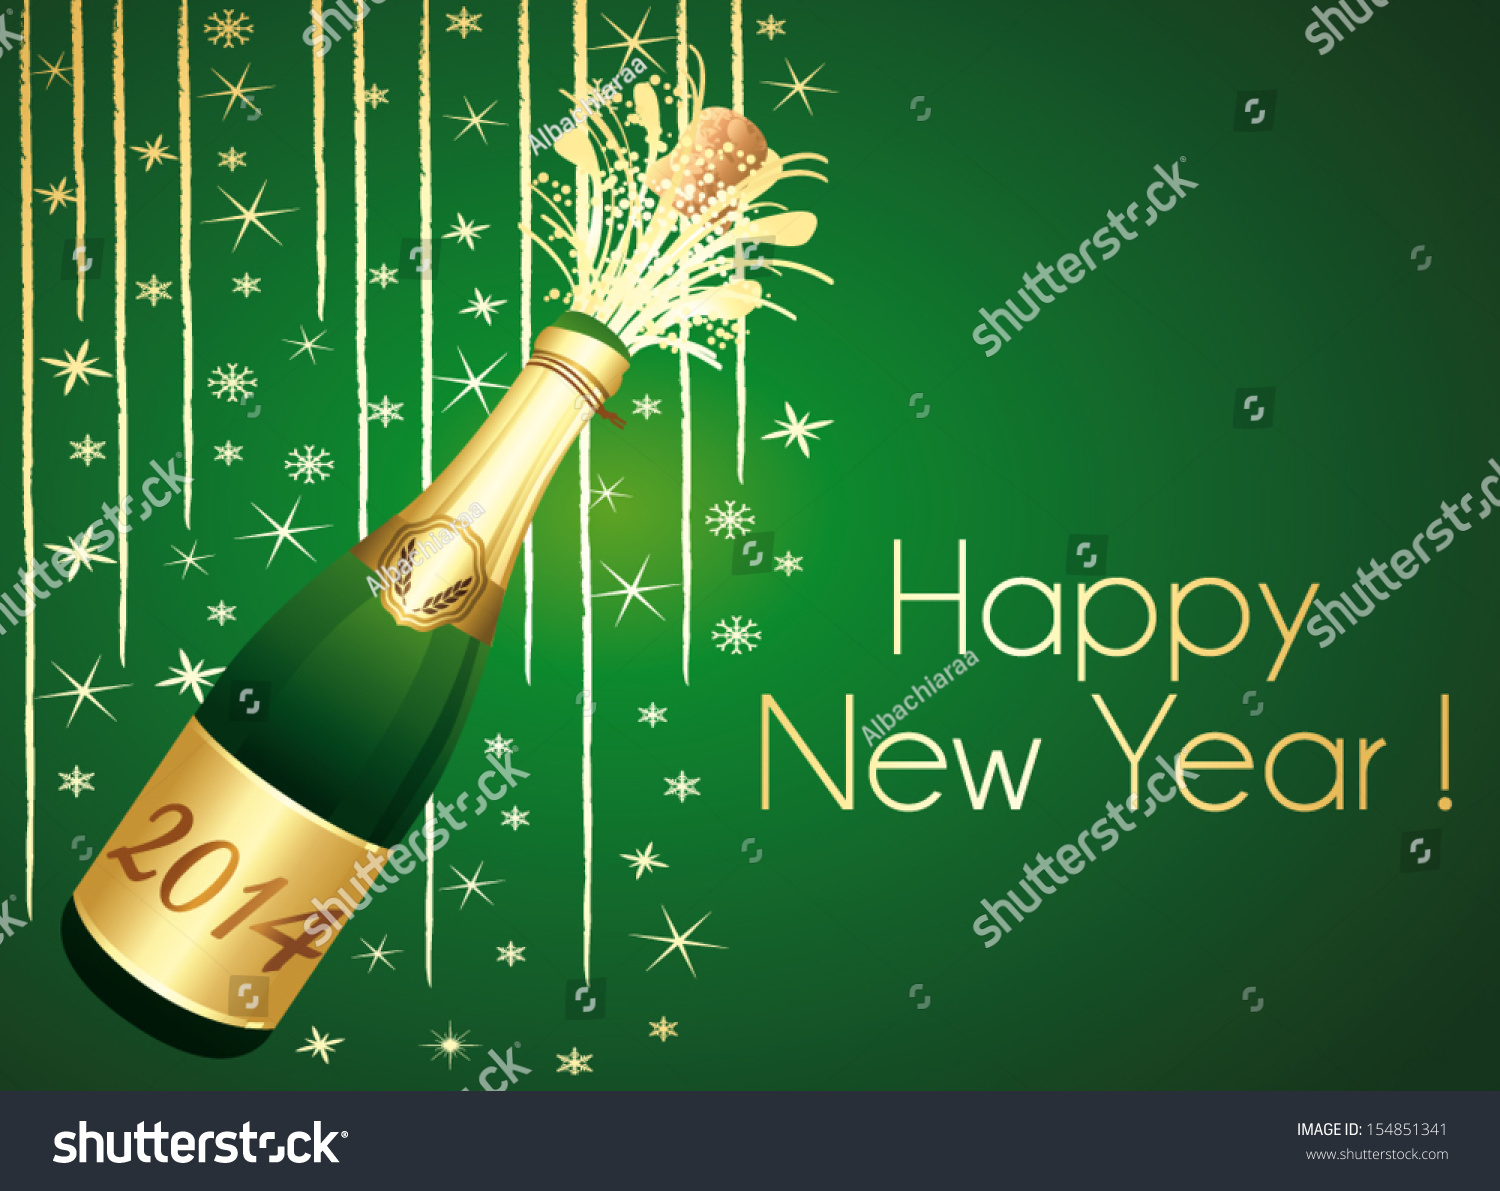 Happy new year 2014 green gold stock photo photo vector happy new year 2014 green and gold horizontal vector greeting card m4hsunfo